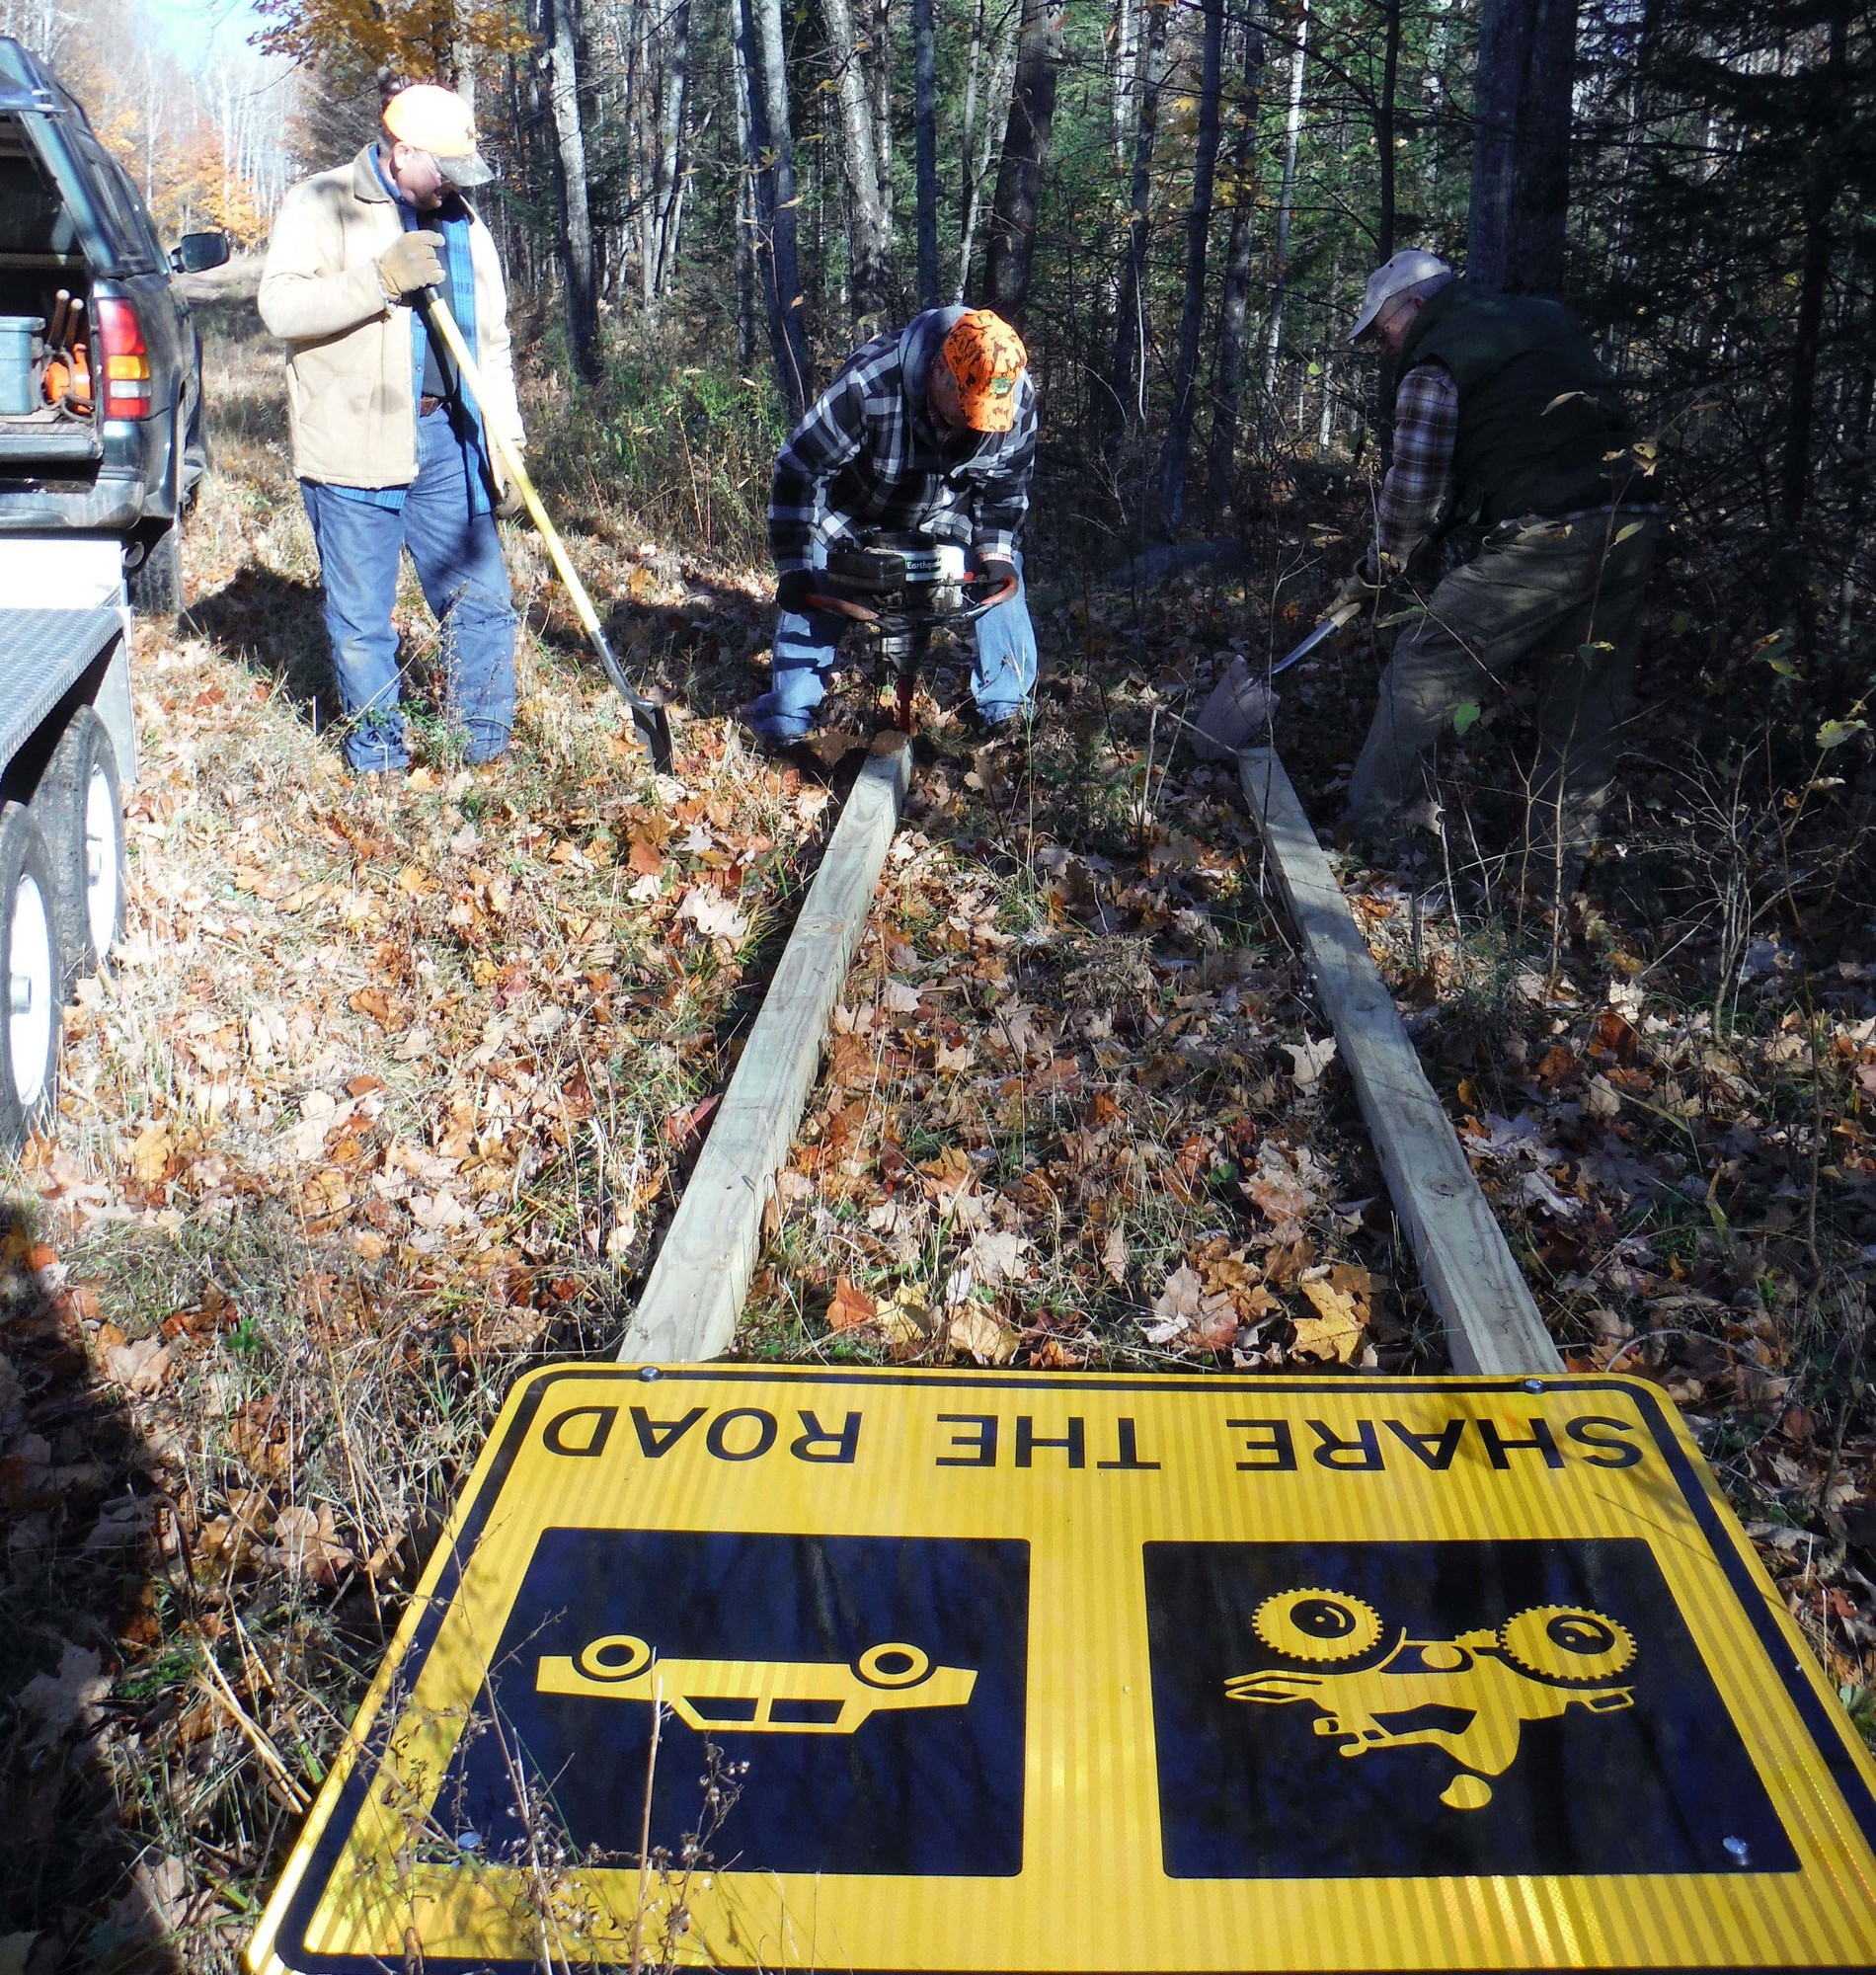 A crew gets ready to put a sign up along a Michigan Trails and Recreation Alliance of Land and the Environment (MI-TRALE) project in the western U.P.